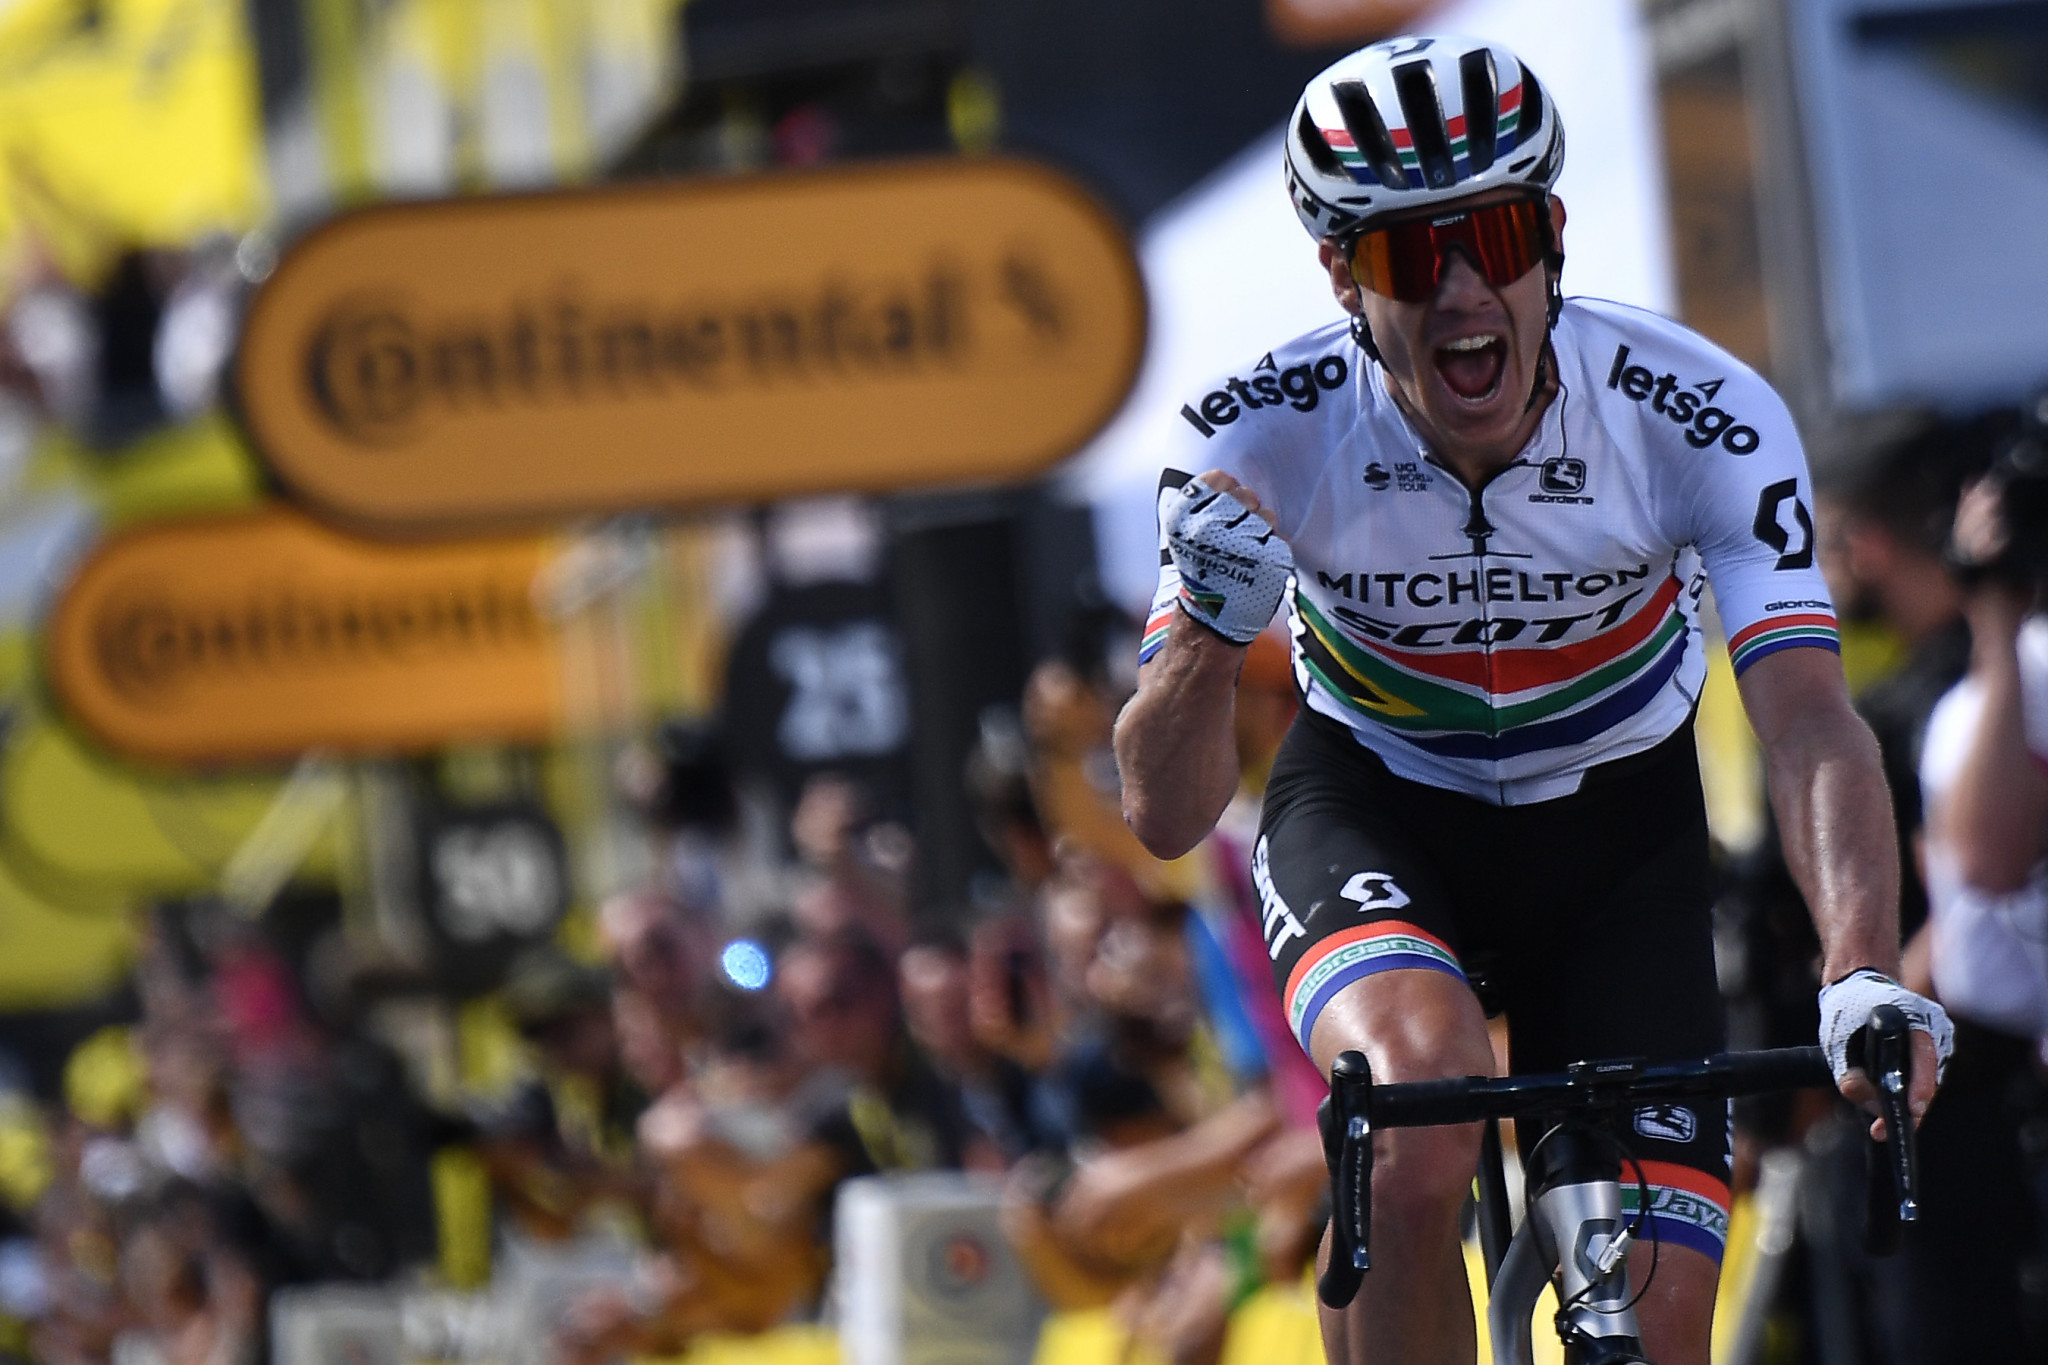 South Africa's Daryl Impey wins the Tour de France ninth stage ©Getty Images